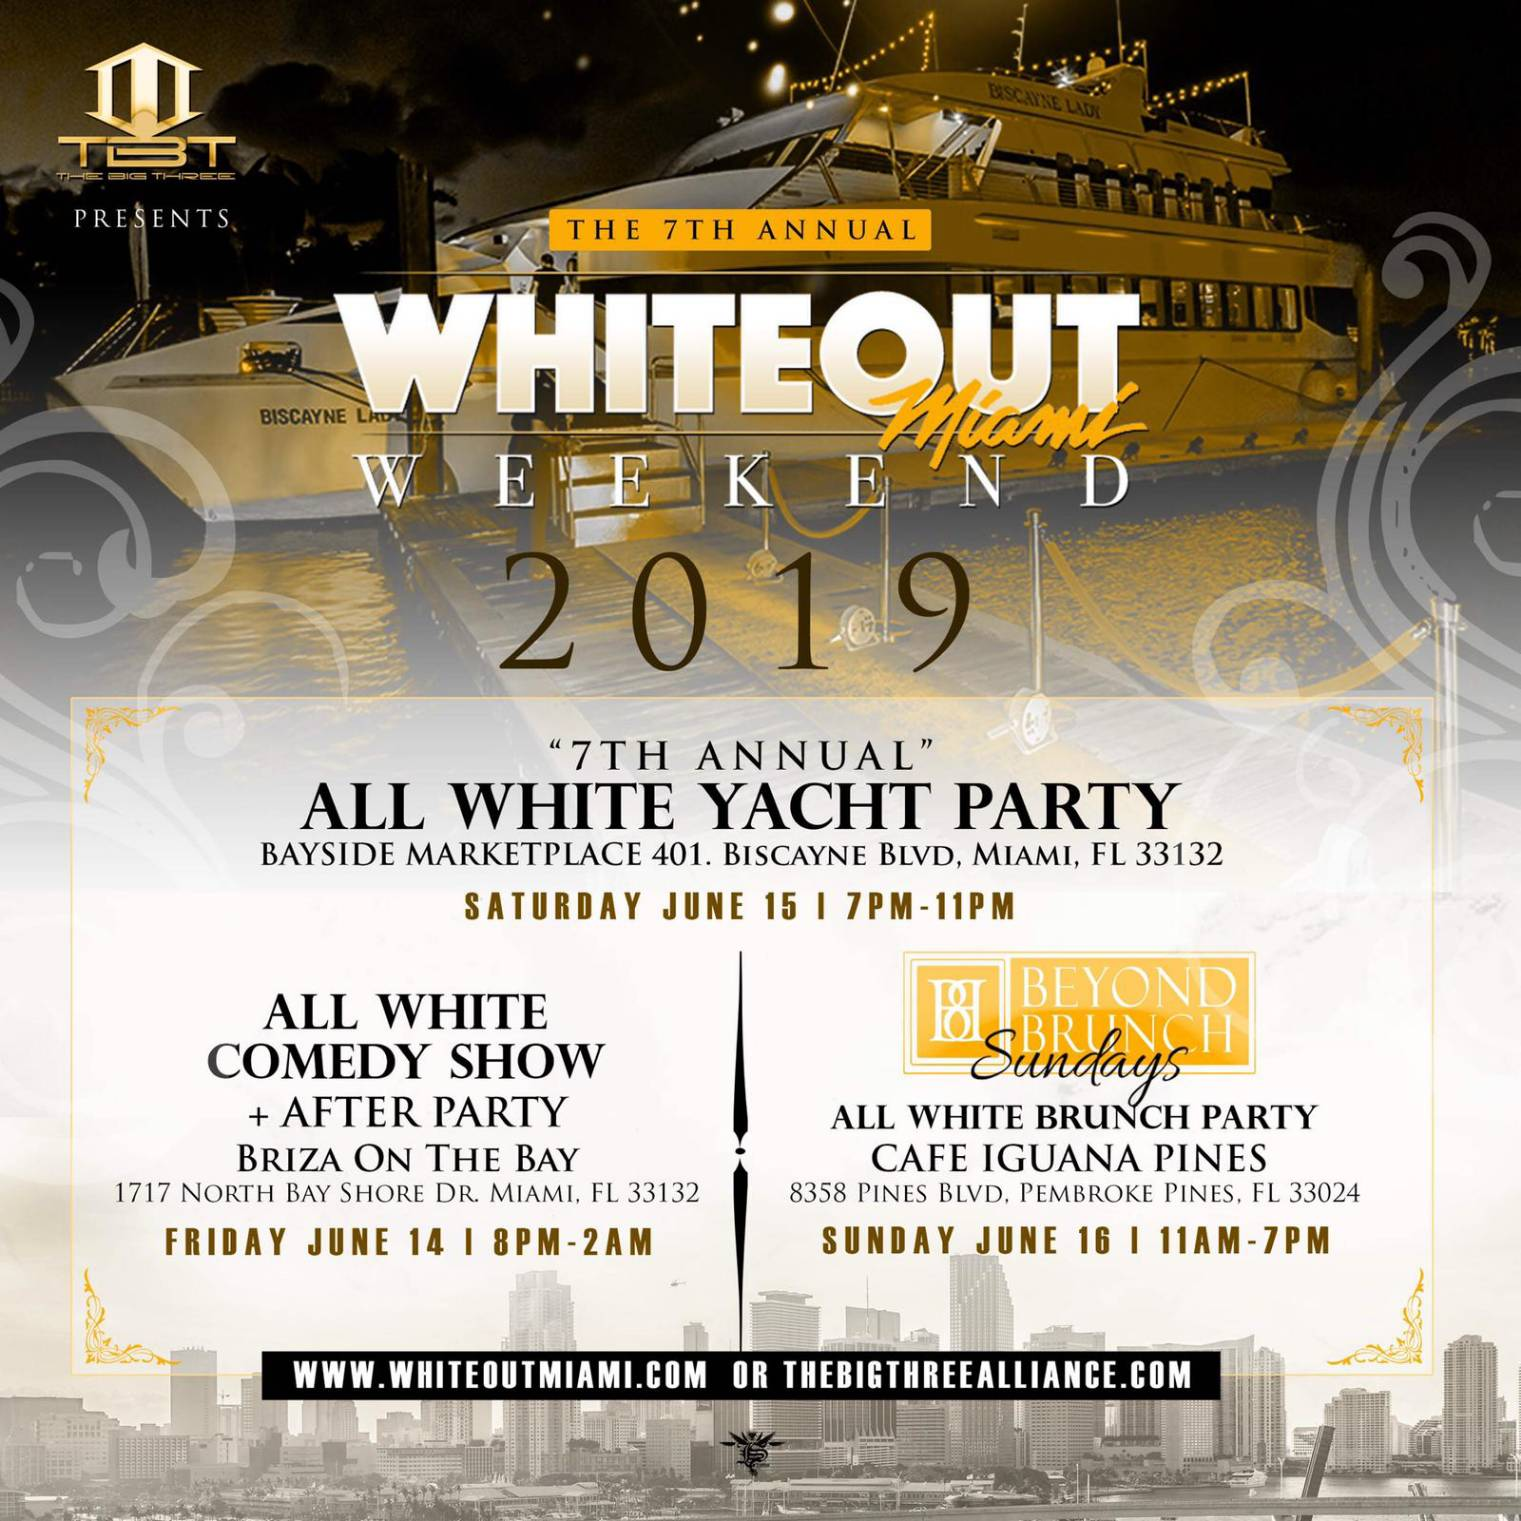 Miami, FL - The Big Three Alliance Presents Whiteout Miami Weekend Featuring the 7th Annual All White Yacht Party & the All White Brunch Party @ Listed in the ticket details!!!!